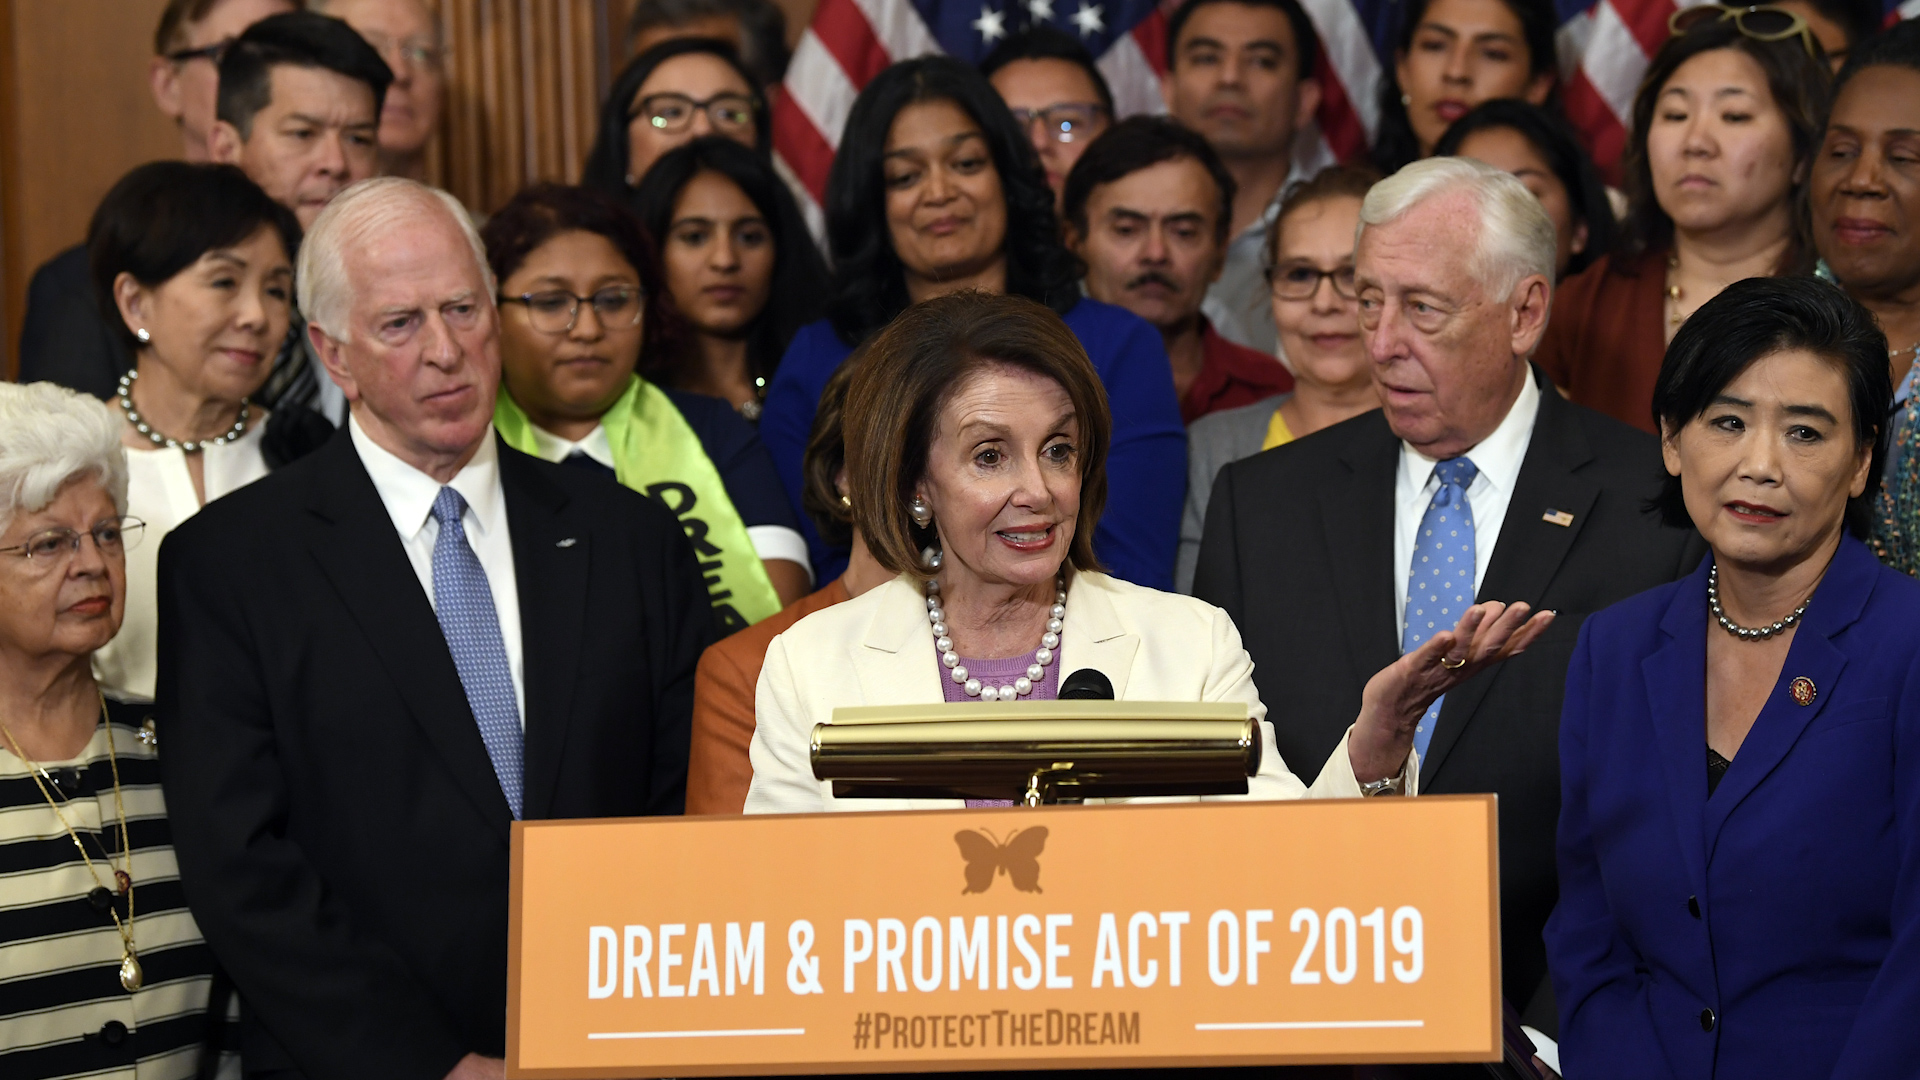 House poised to pass immigration bill that would protect 'dreamers'